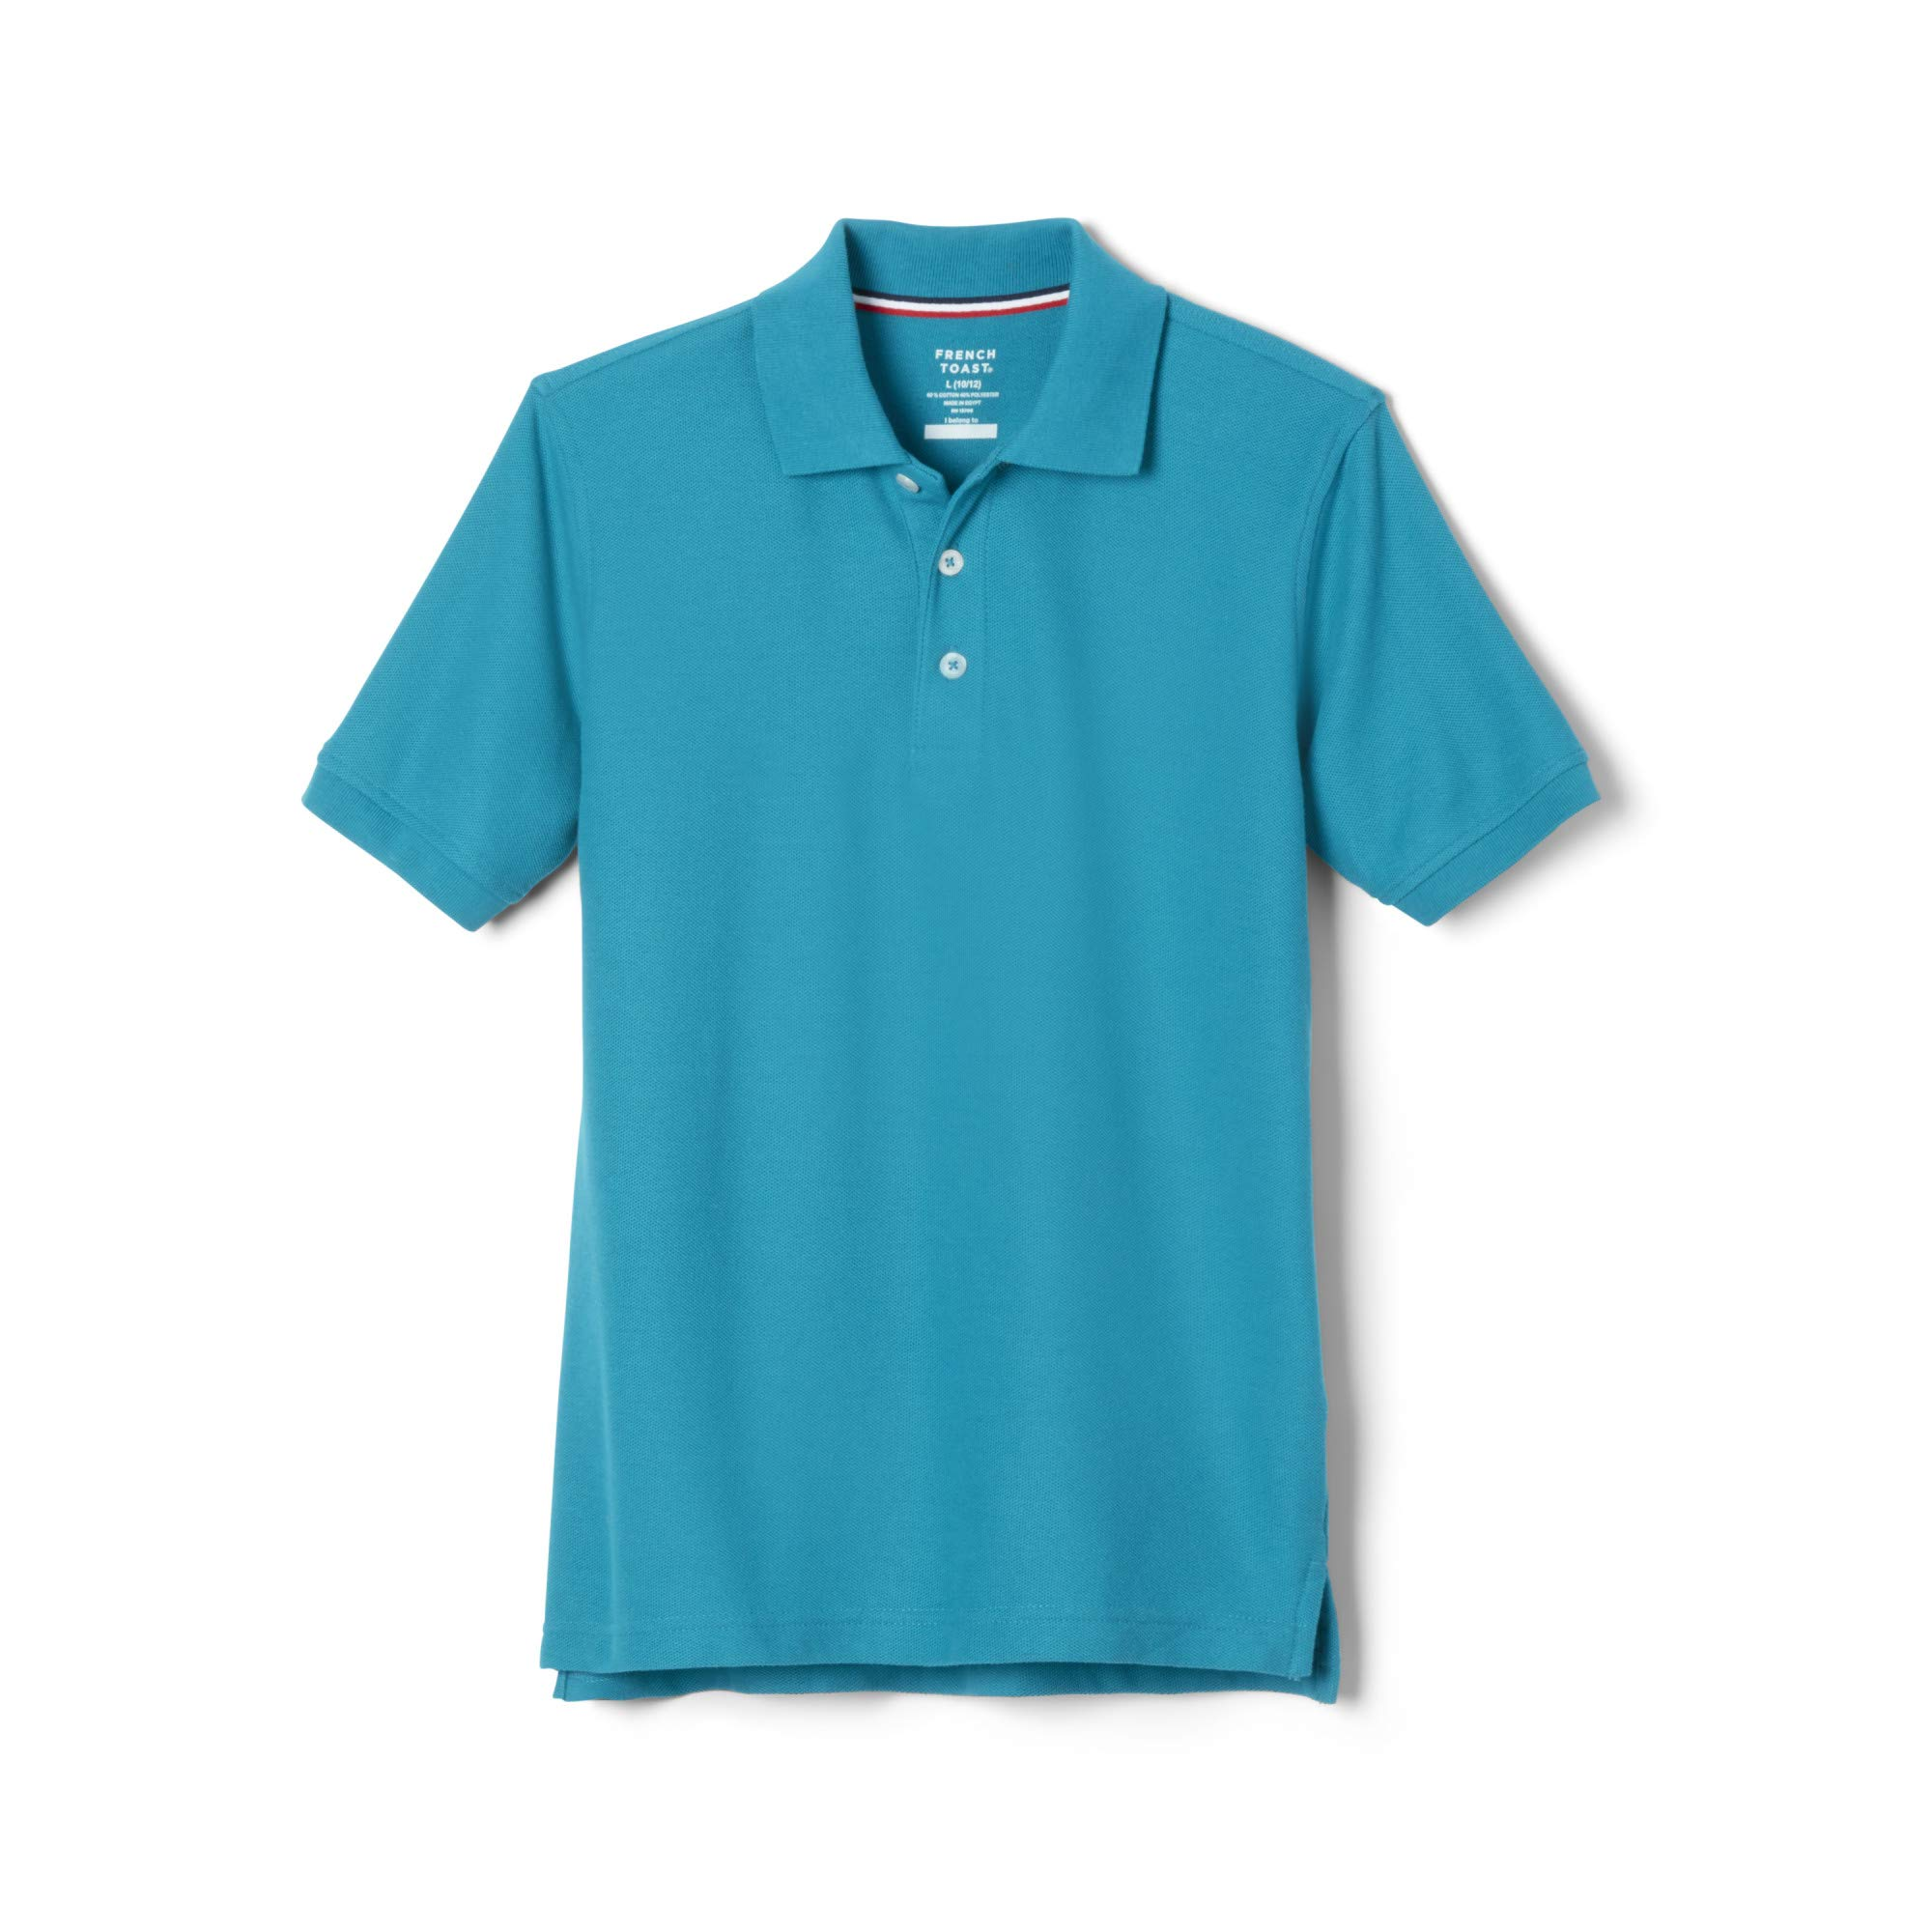 French Toast Big Boys' Short Sleeve Pique Polo, Teal, 10